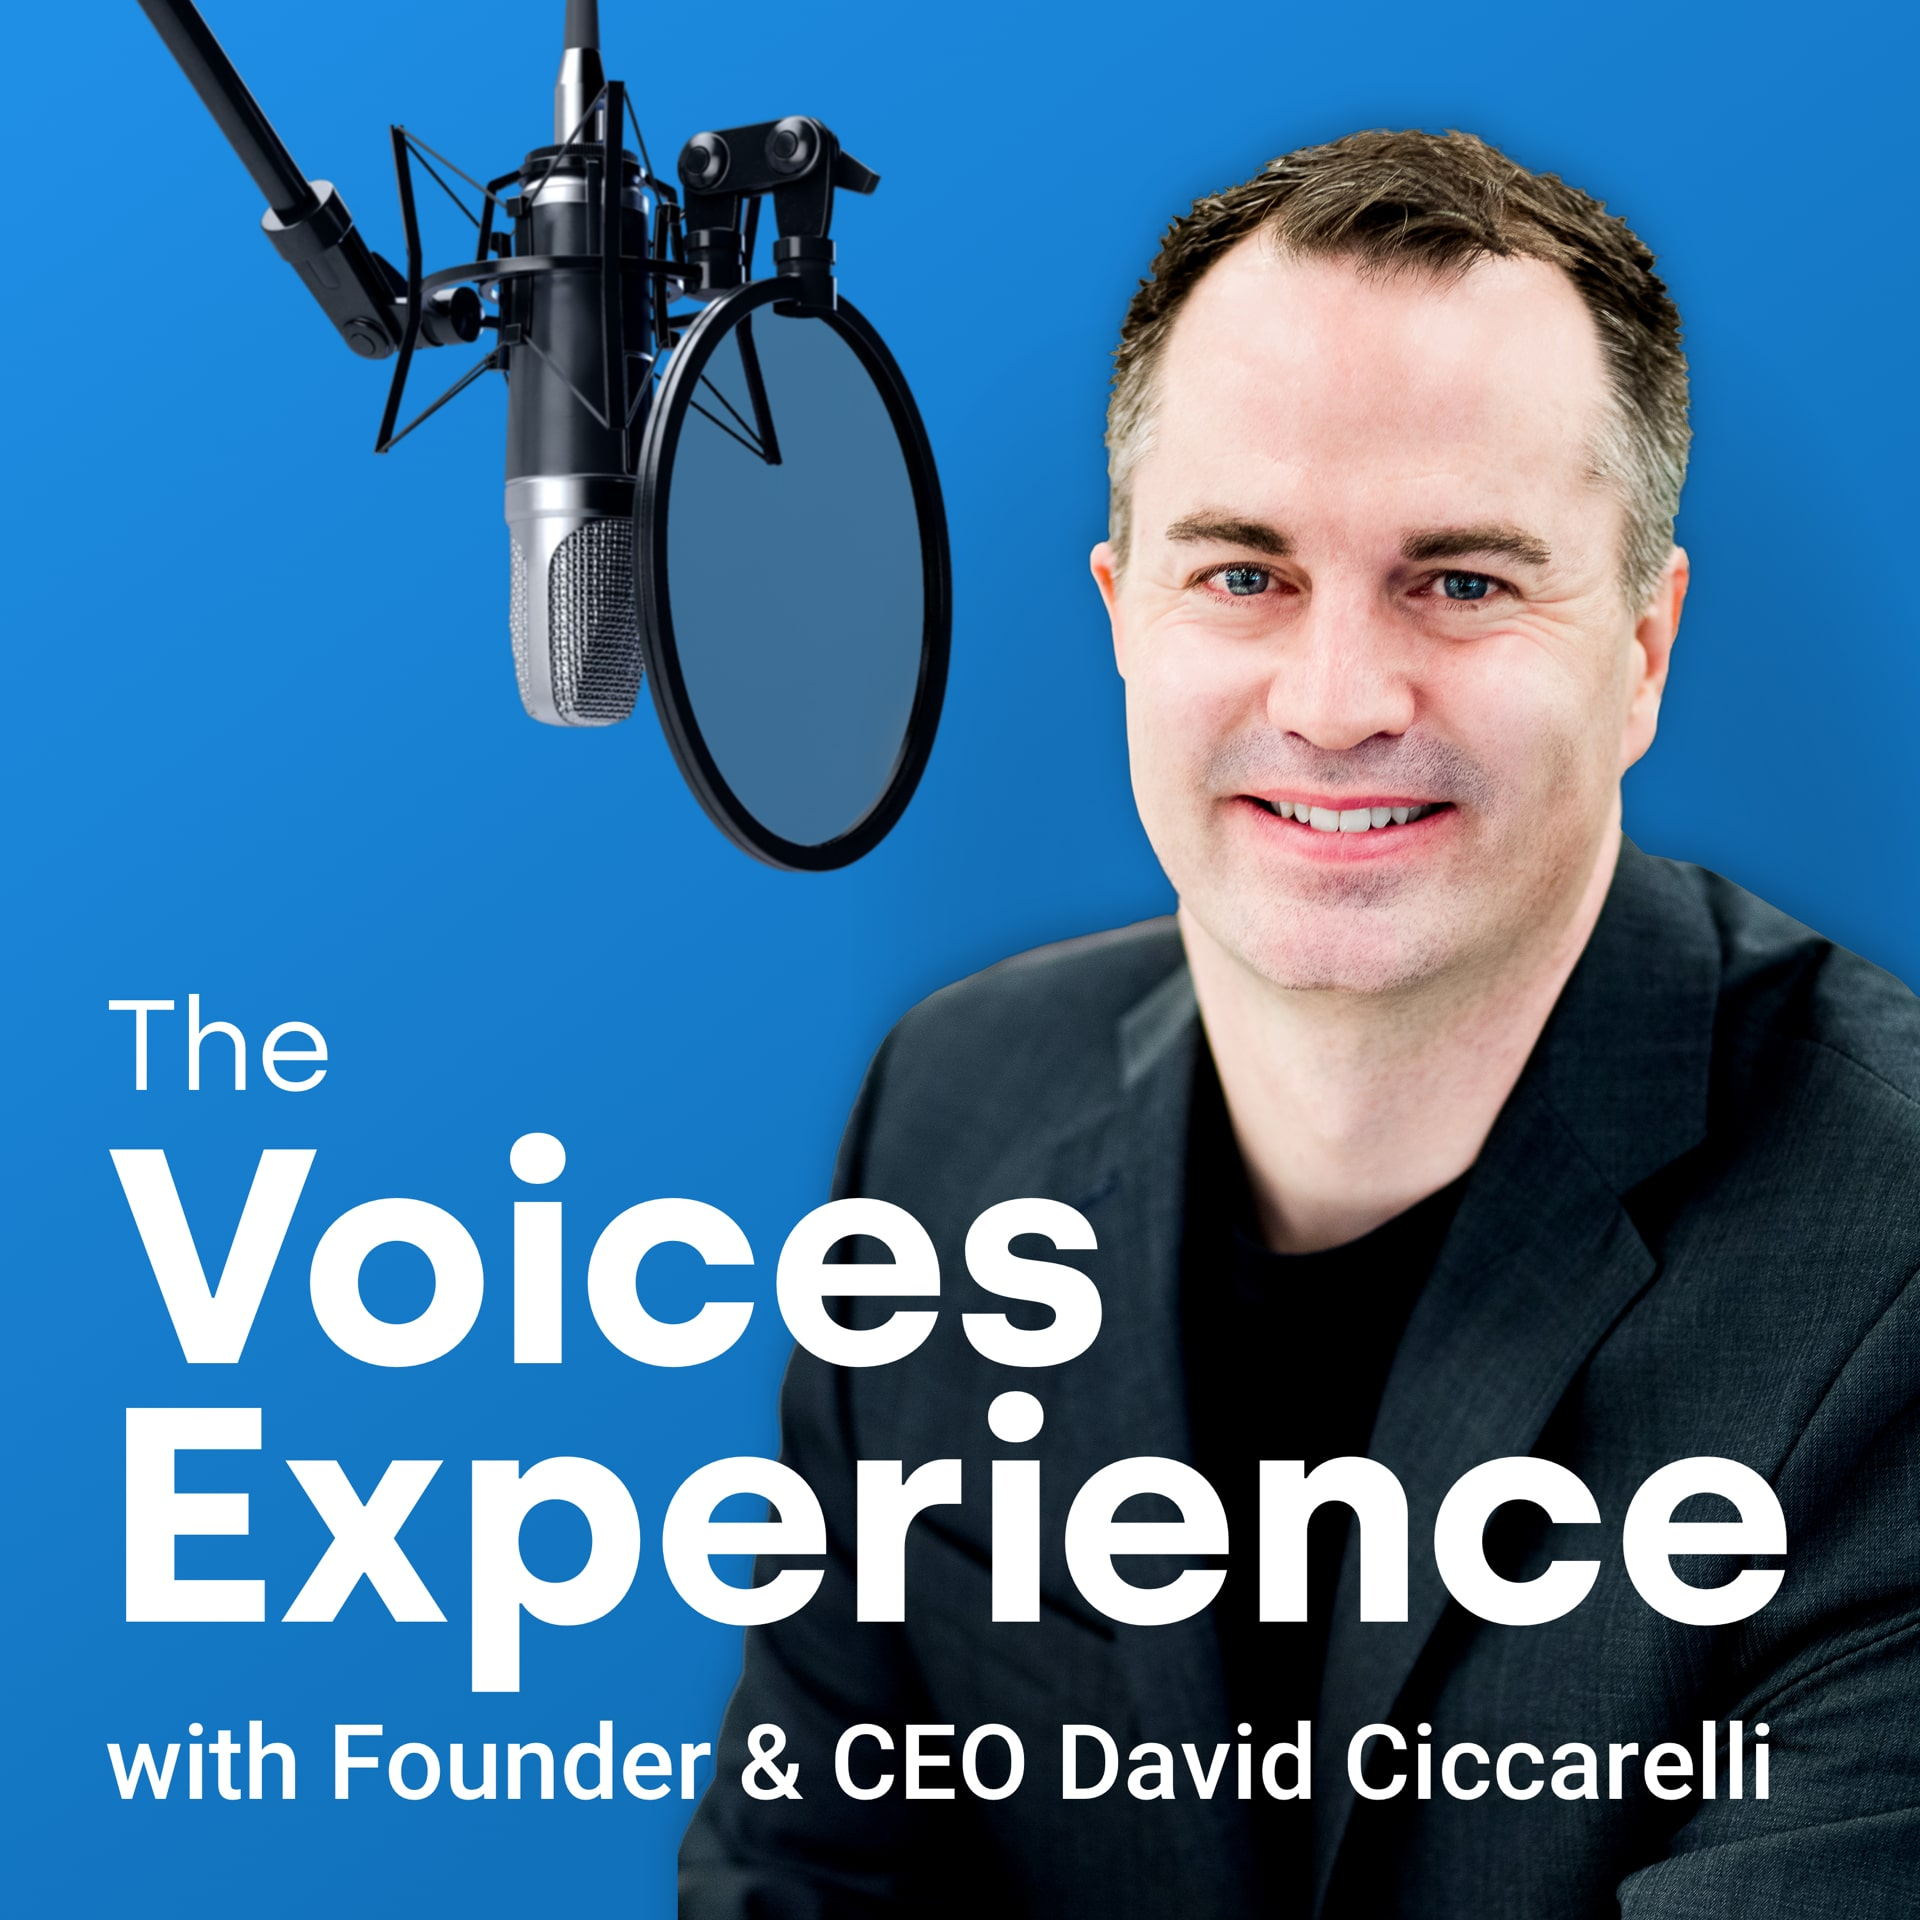 The Voices Experience with Founder & CEO David Ciccarelli